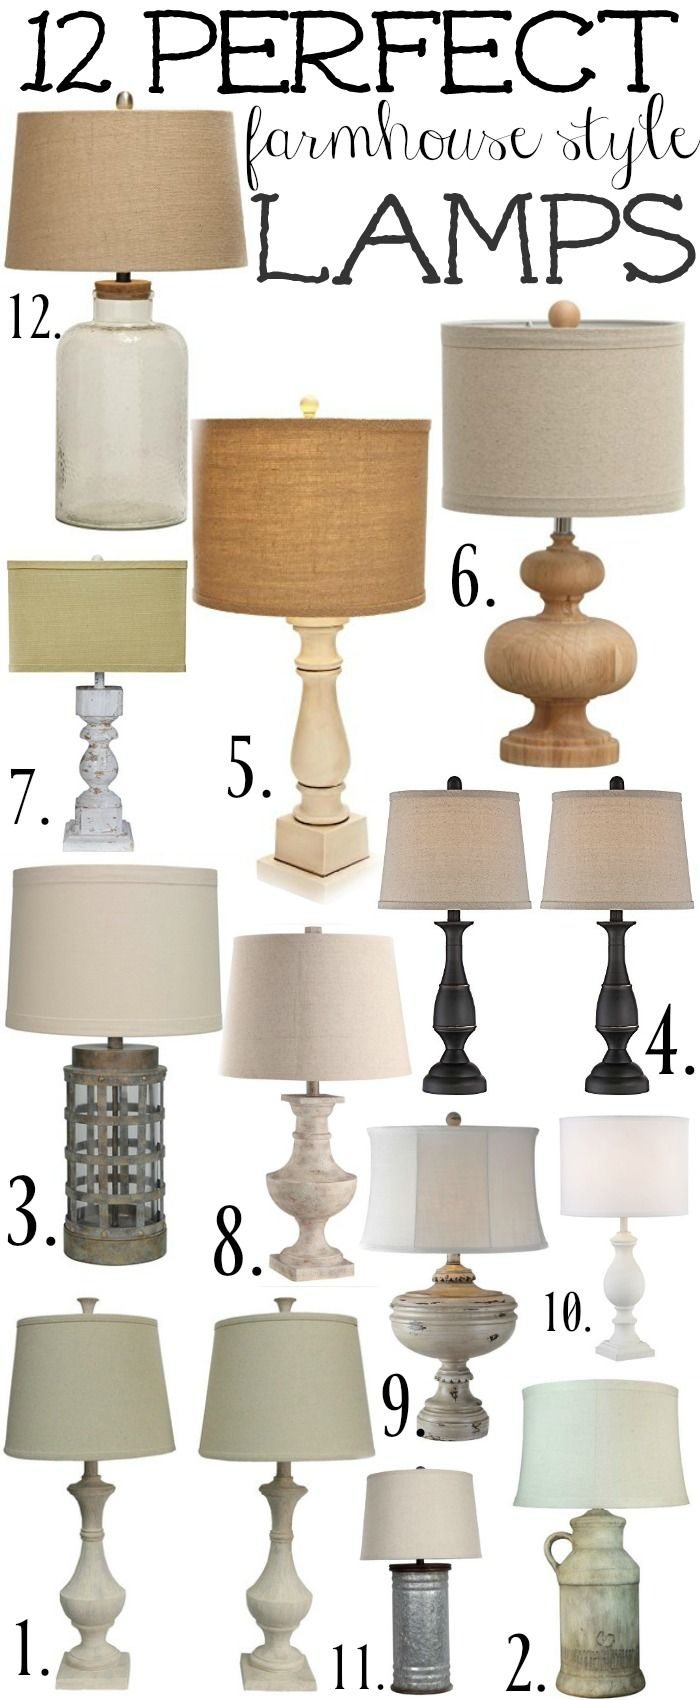 12 Perfect Farmhouse Style Lamps | Farmhouse style, Living rooms ...